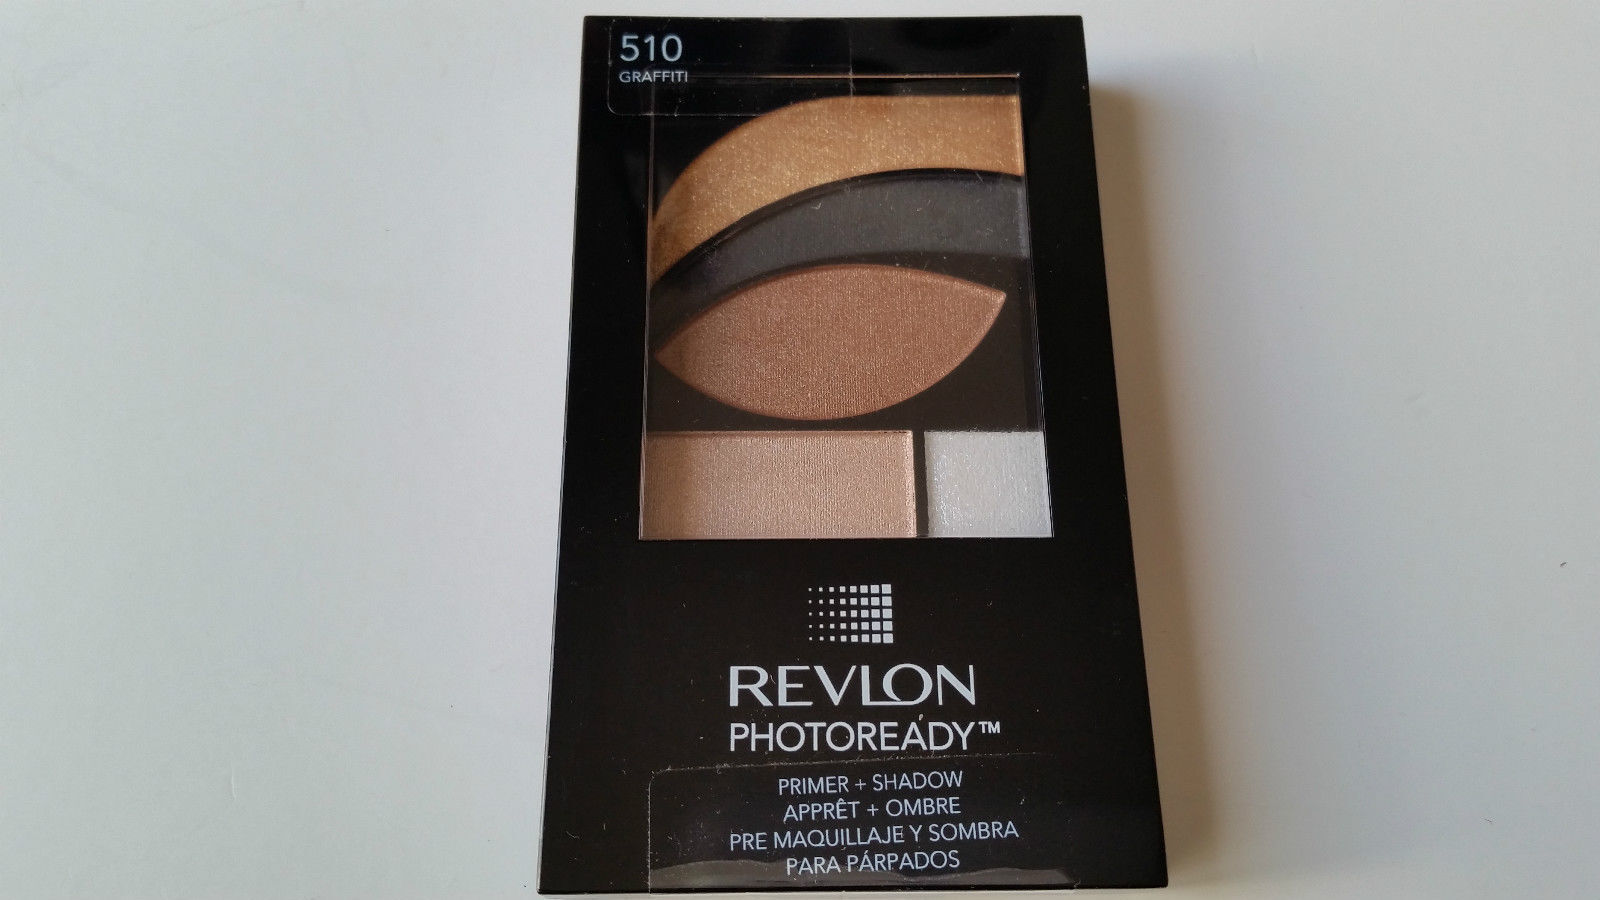 OMBRETTO REVLON PHOTOREADY PRIMER + SHADOW GRAFFITI 510 2.8G